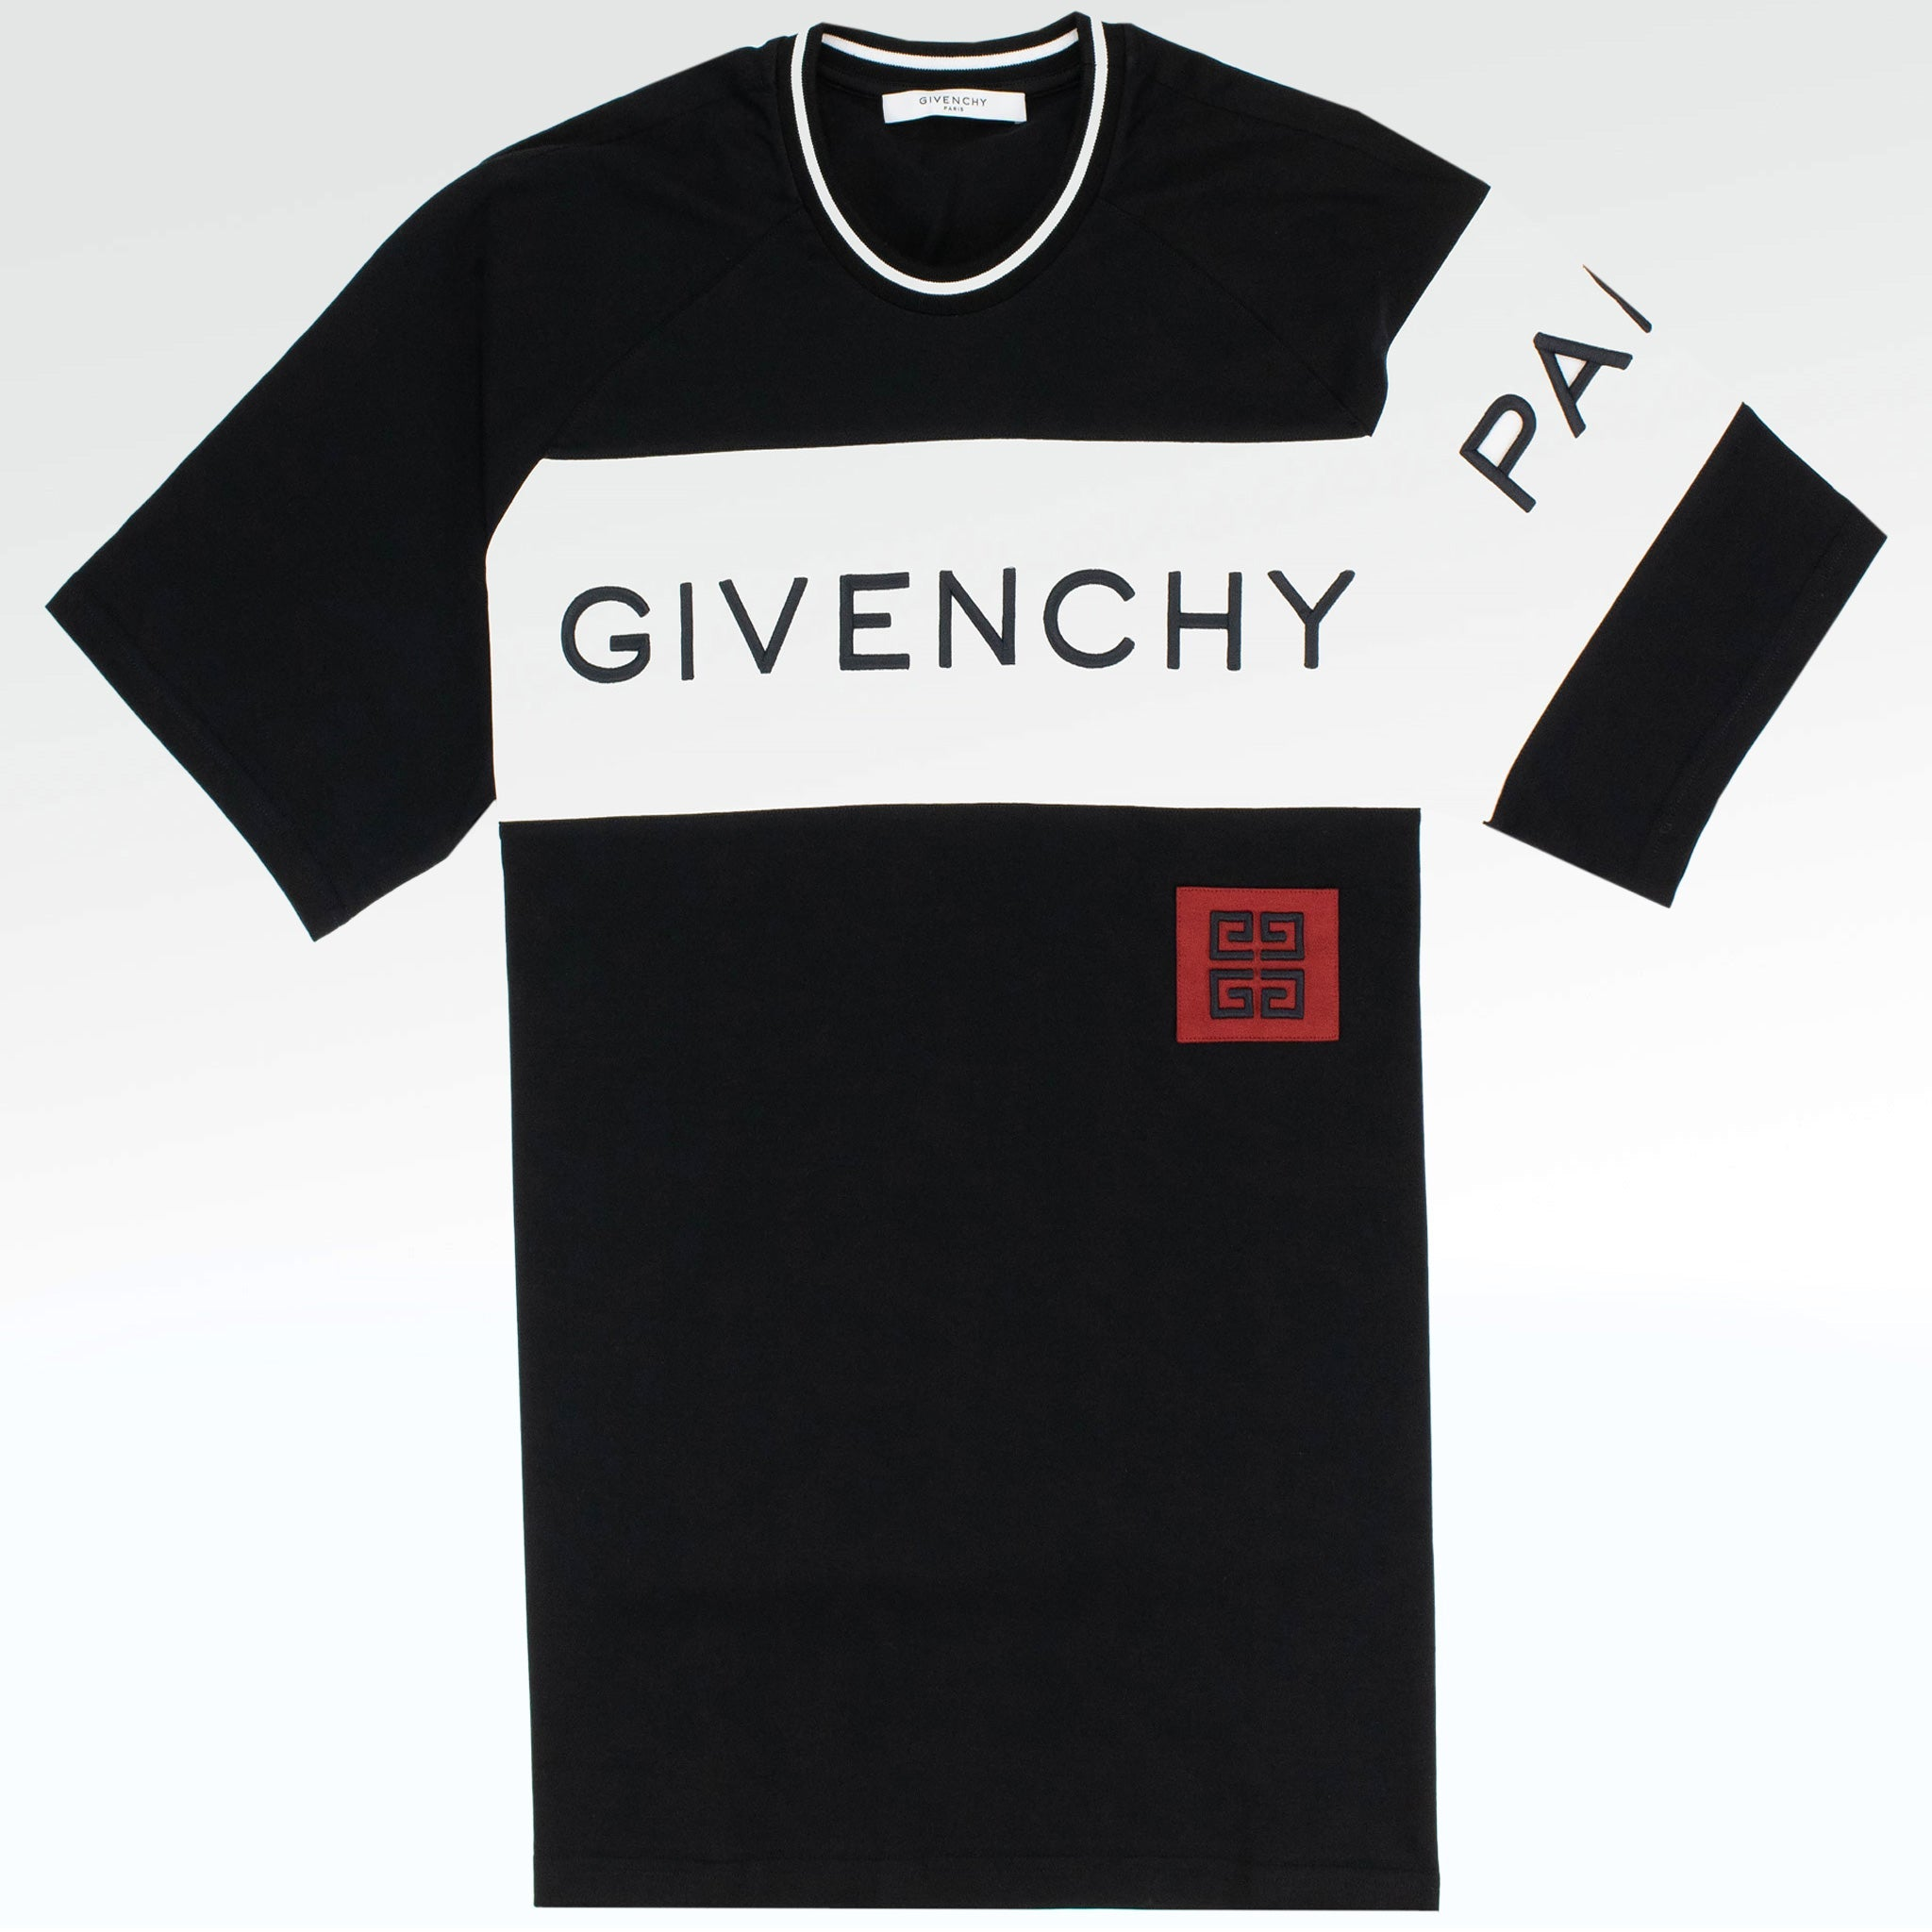 5461014f921a Givenchy Paris Embroidered Oversized Logo T Shirt Black White ...